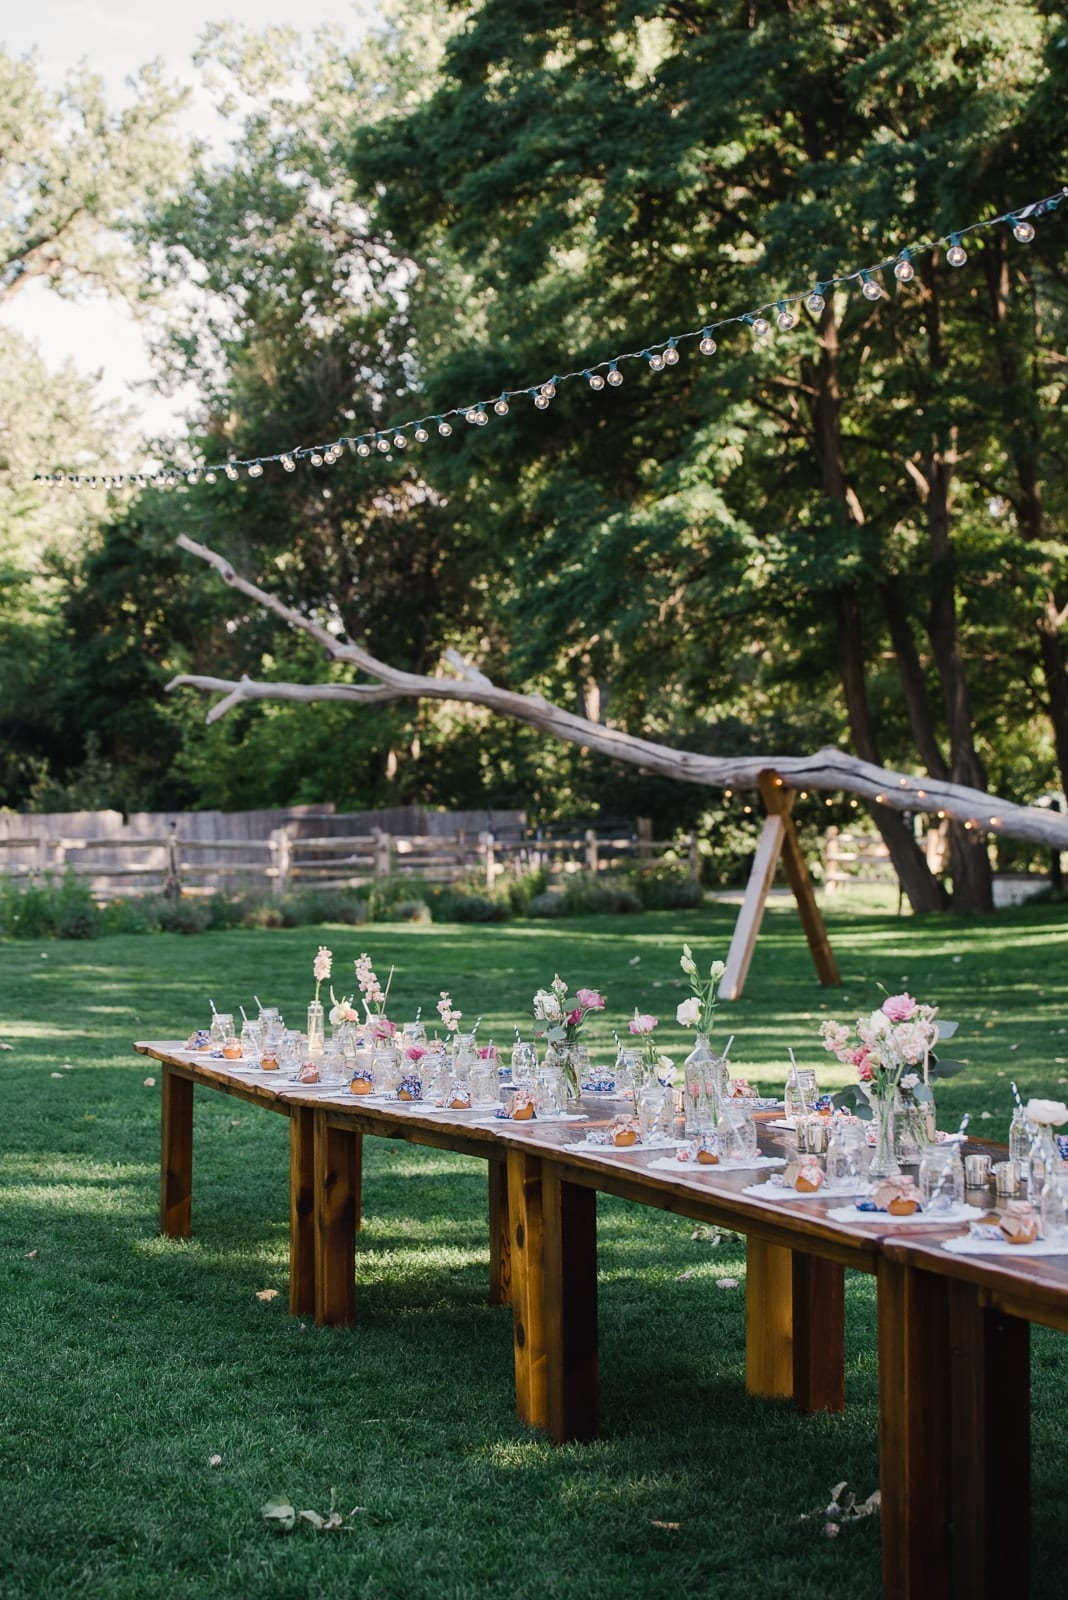 Rustic wedding style at Lyons Farmette in Colorado by Josie V Photography